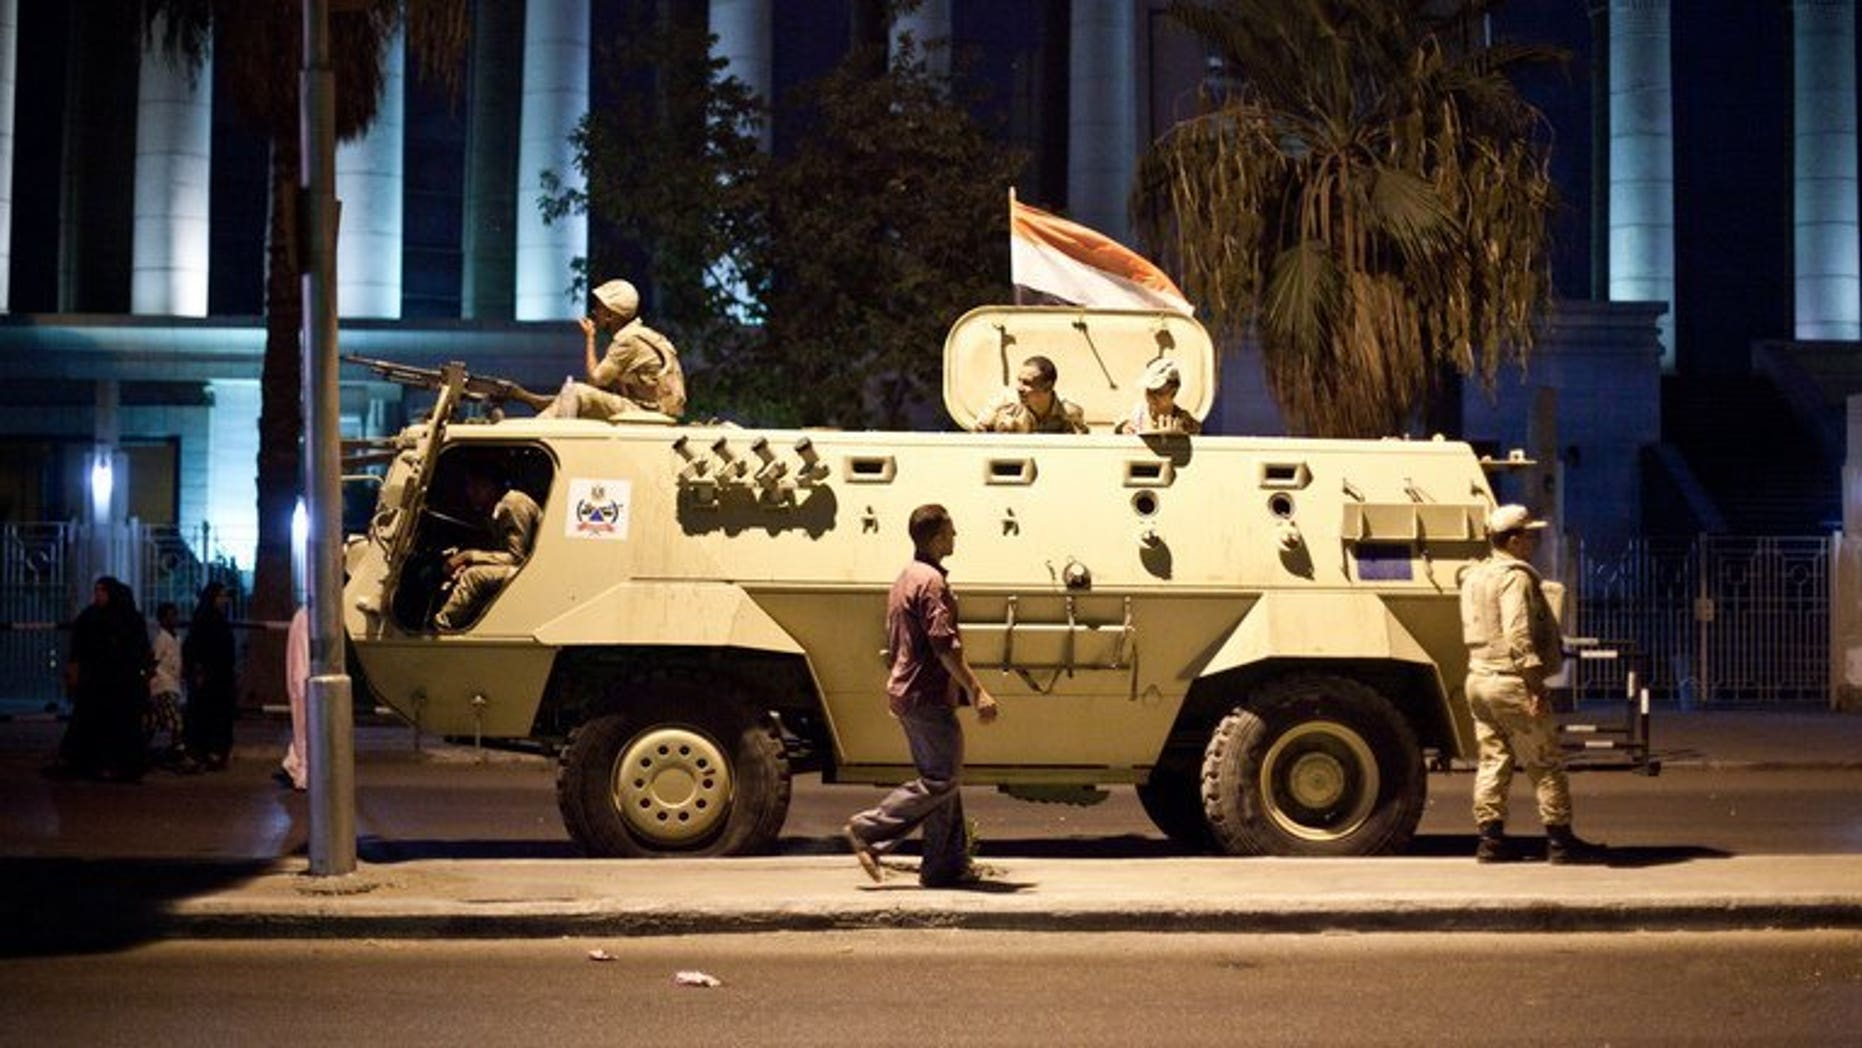 An Egyptian army armoured vehicle pictured in front of the Supreme Constitutional Court in Cairo ahead of planned demonstrations on August 18, 2013. Israel and the West must support Egypt's army, an Israeli official said Monday, after 24 Egyptian policemen were killed in an attack in the Sinai bordering the Jewish state.